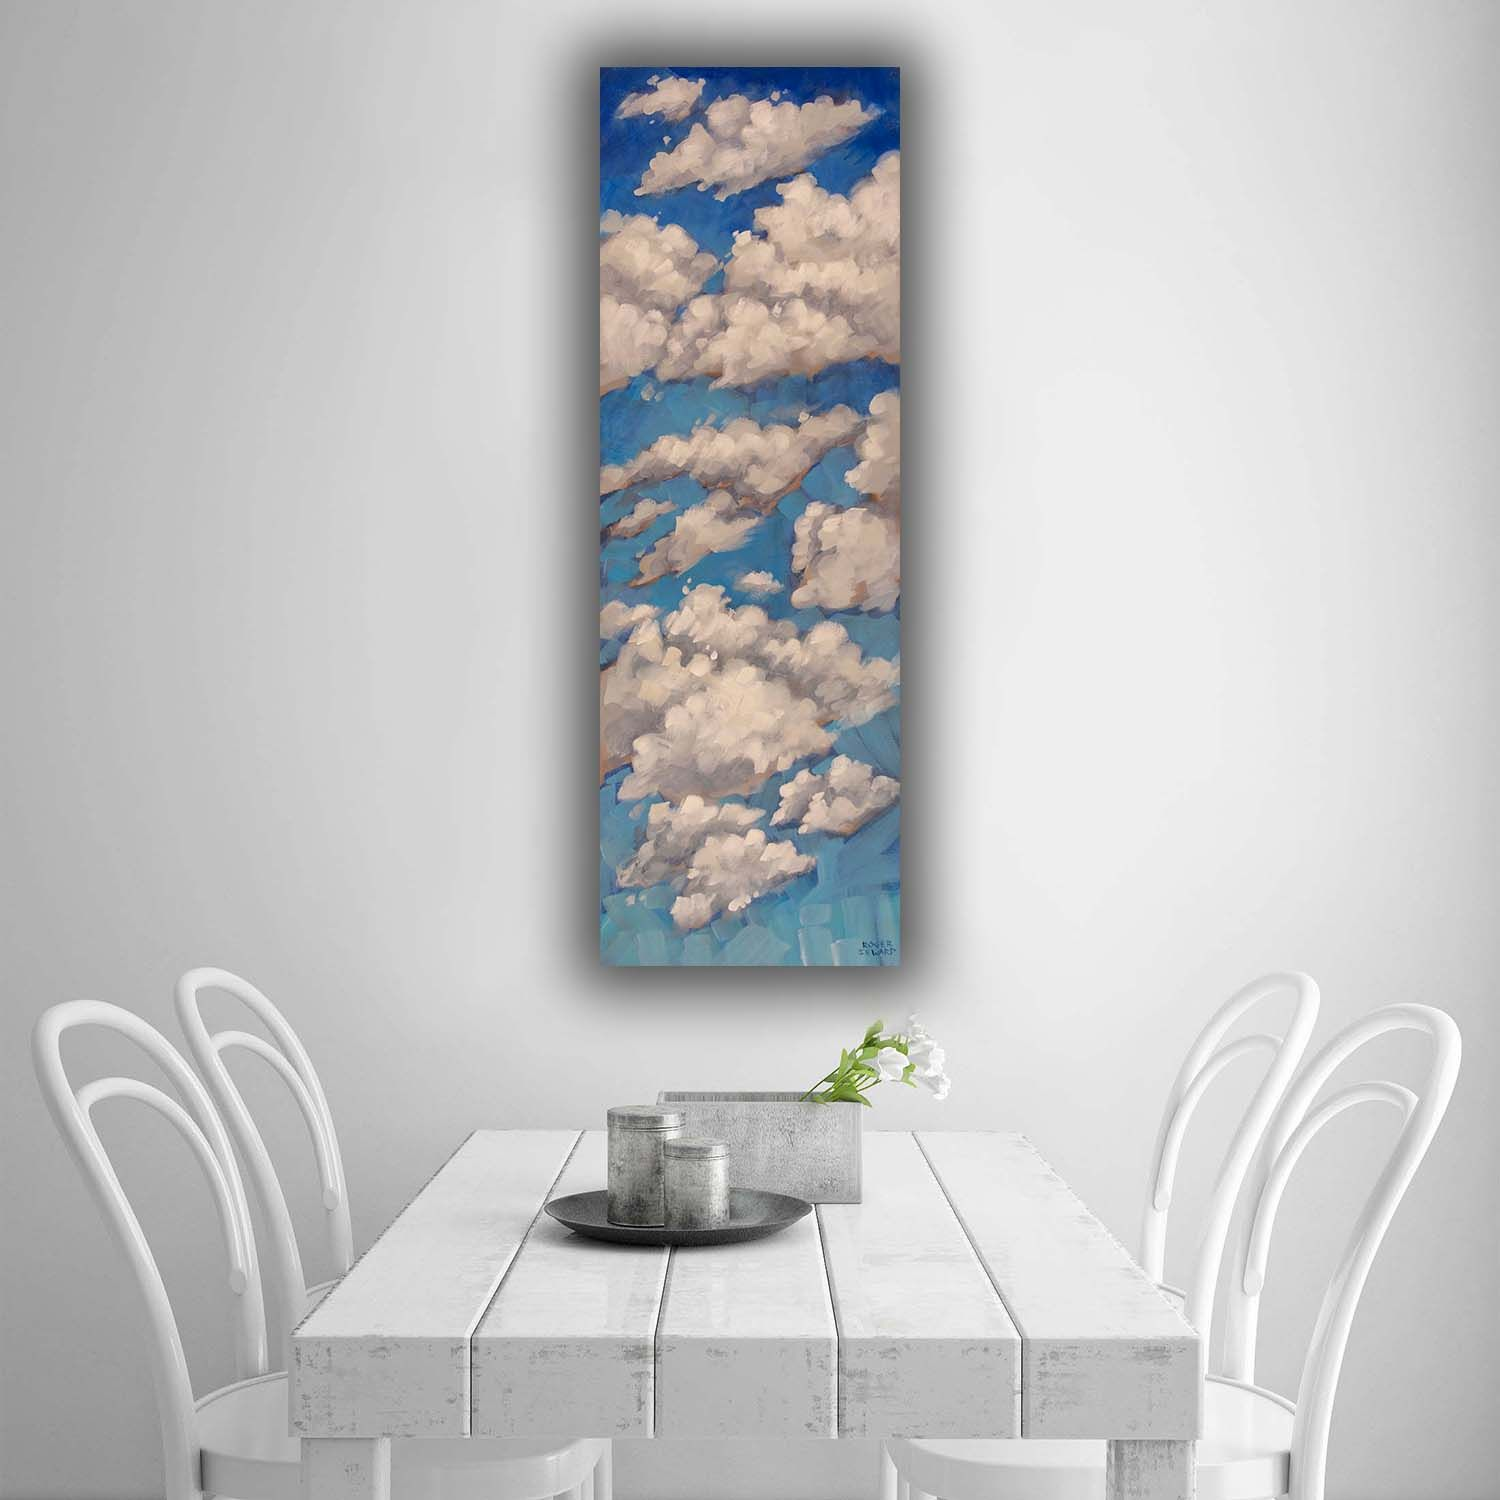 Blue Sky Clouds Painting On Narrow Tall Canvas A Great Touch Of Wall Art For Any Home Decor Style Browse O Original Paintings Cloud Painting Blue Sky Clouds